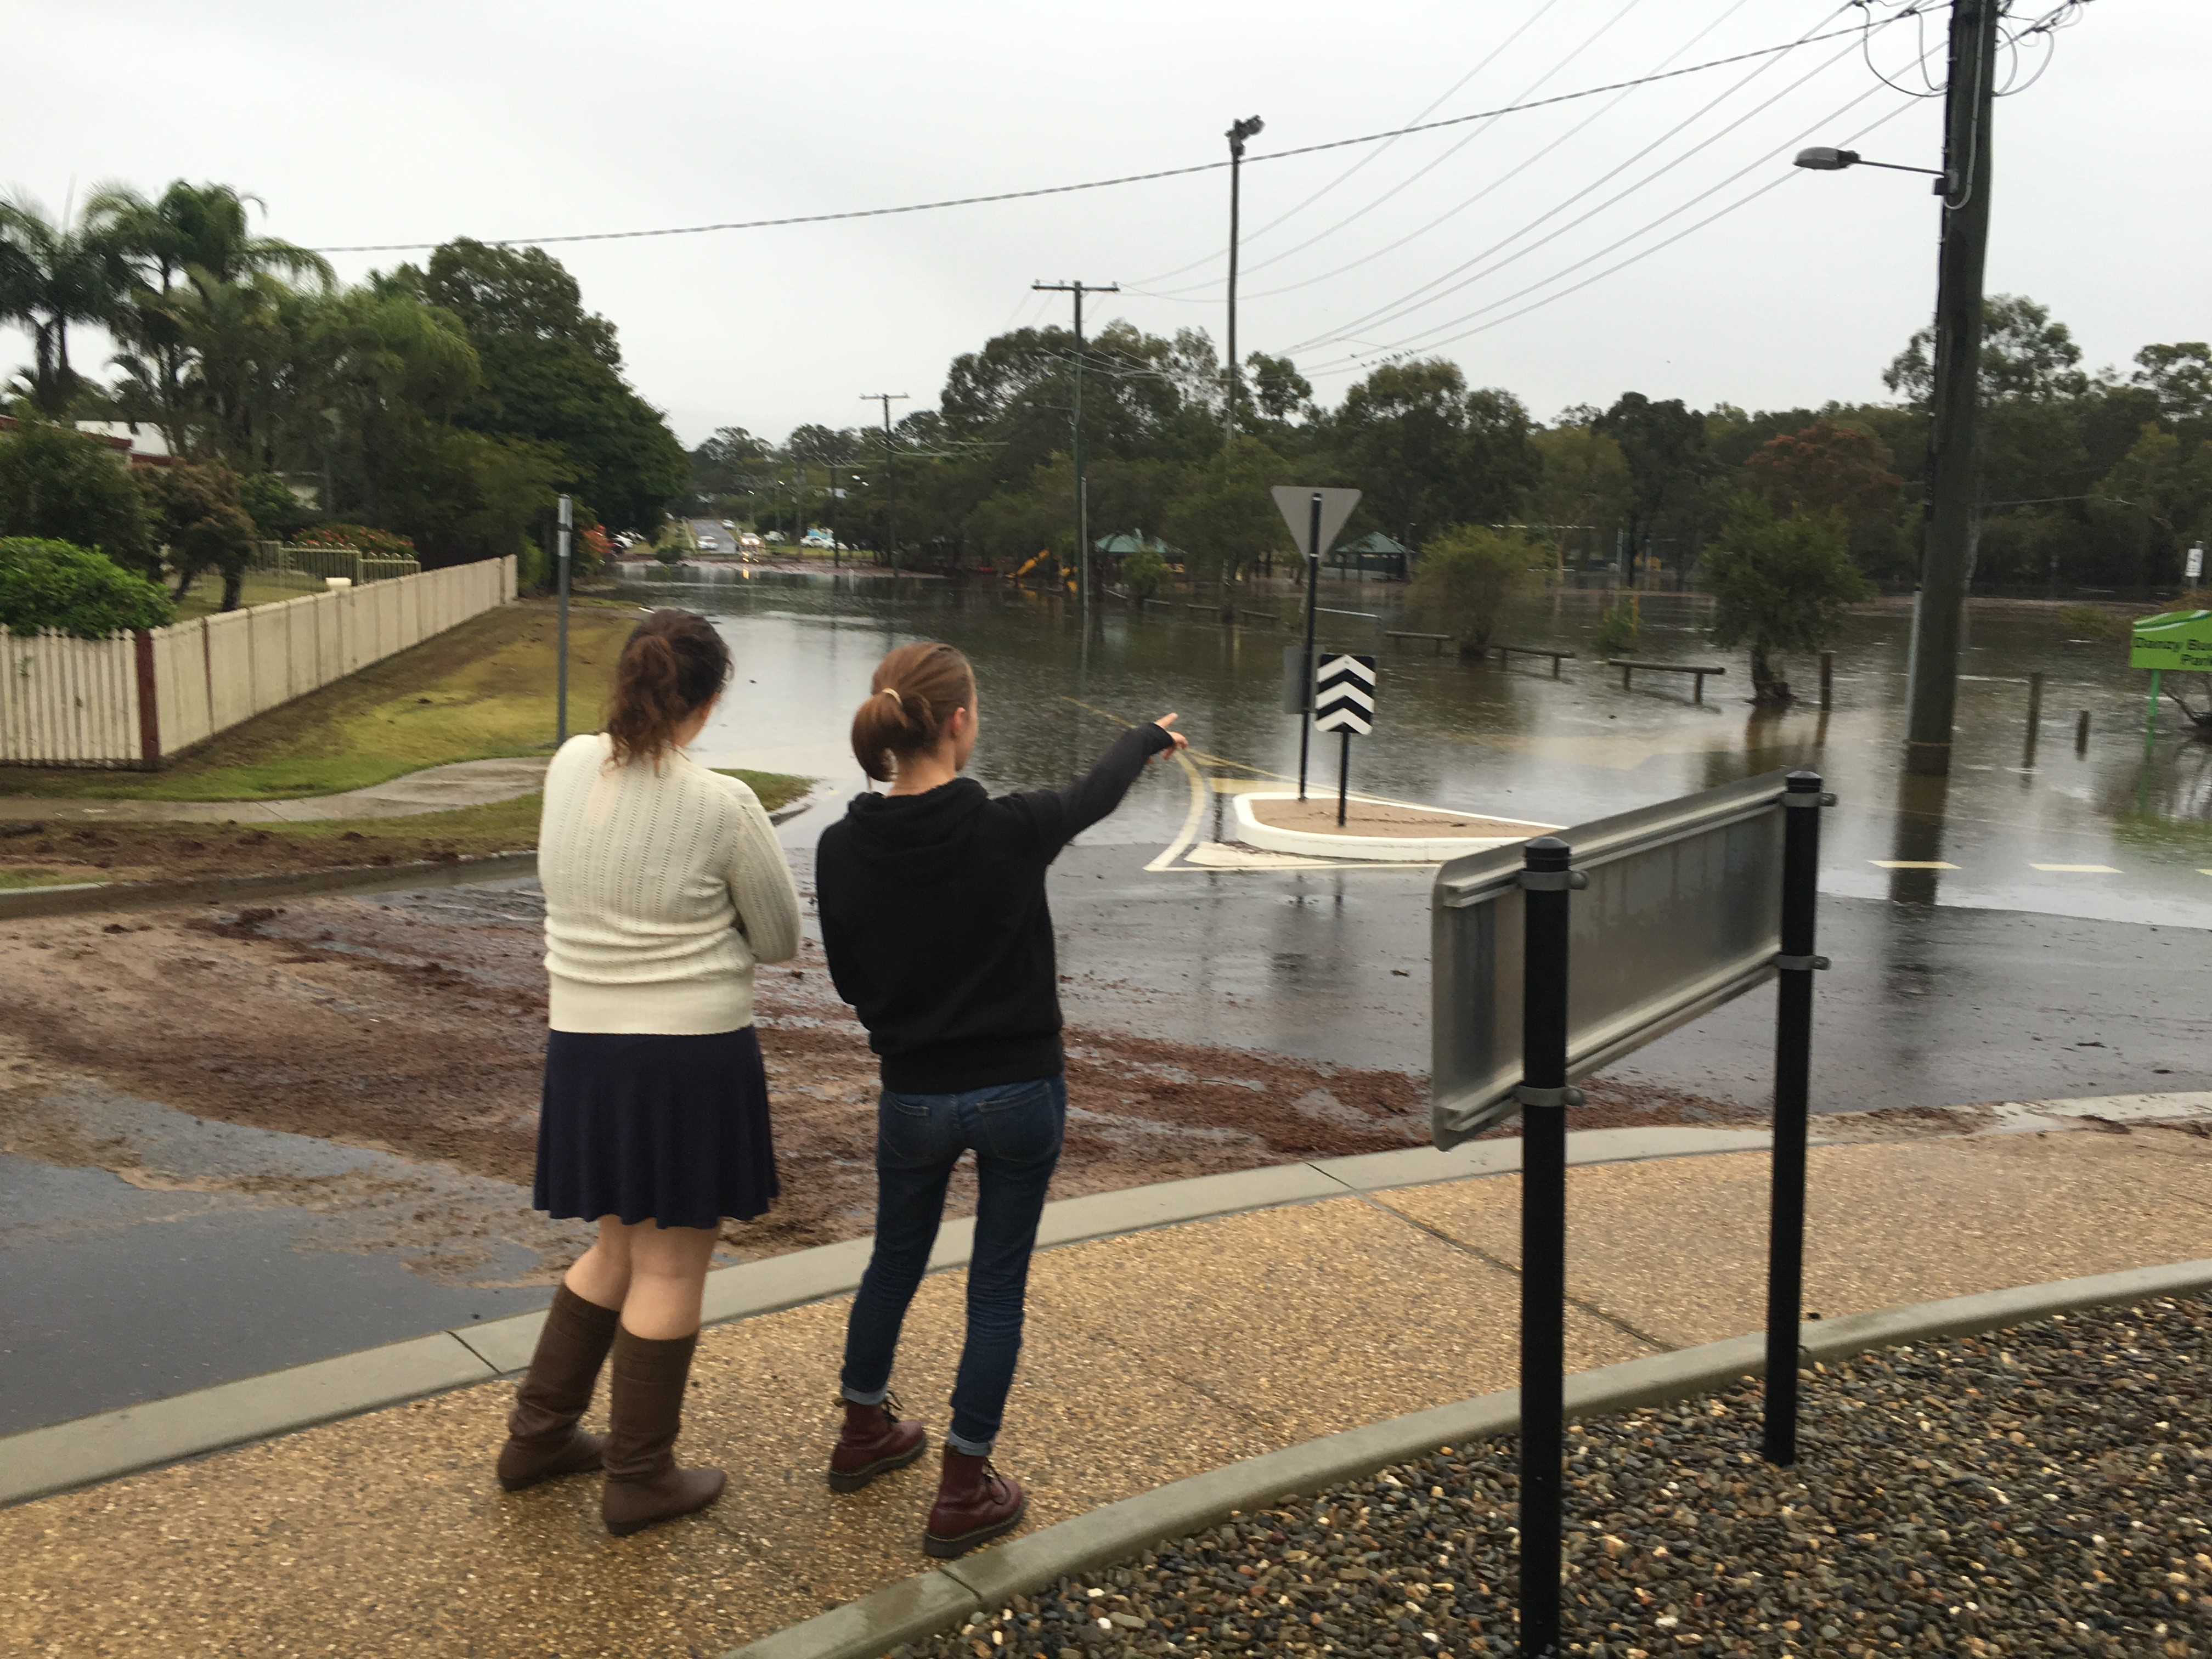 Initial-Flood-watch-issued-Moreton-Bay